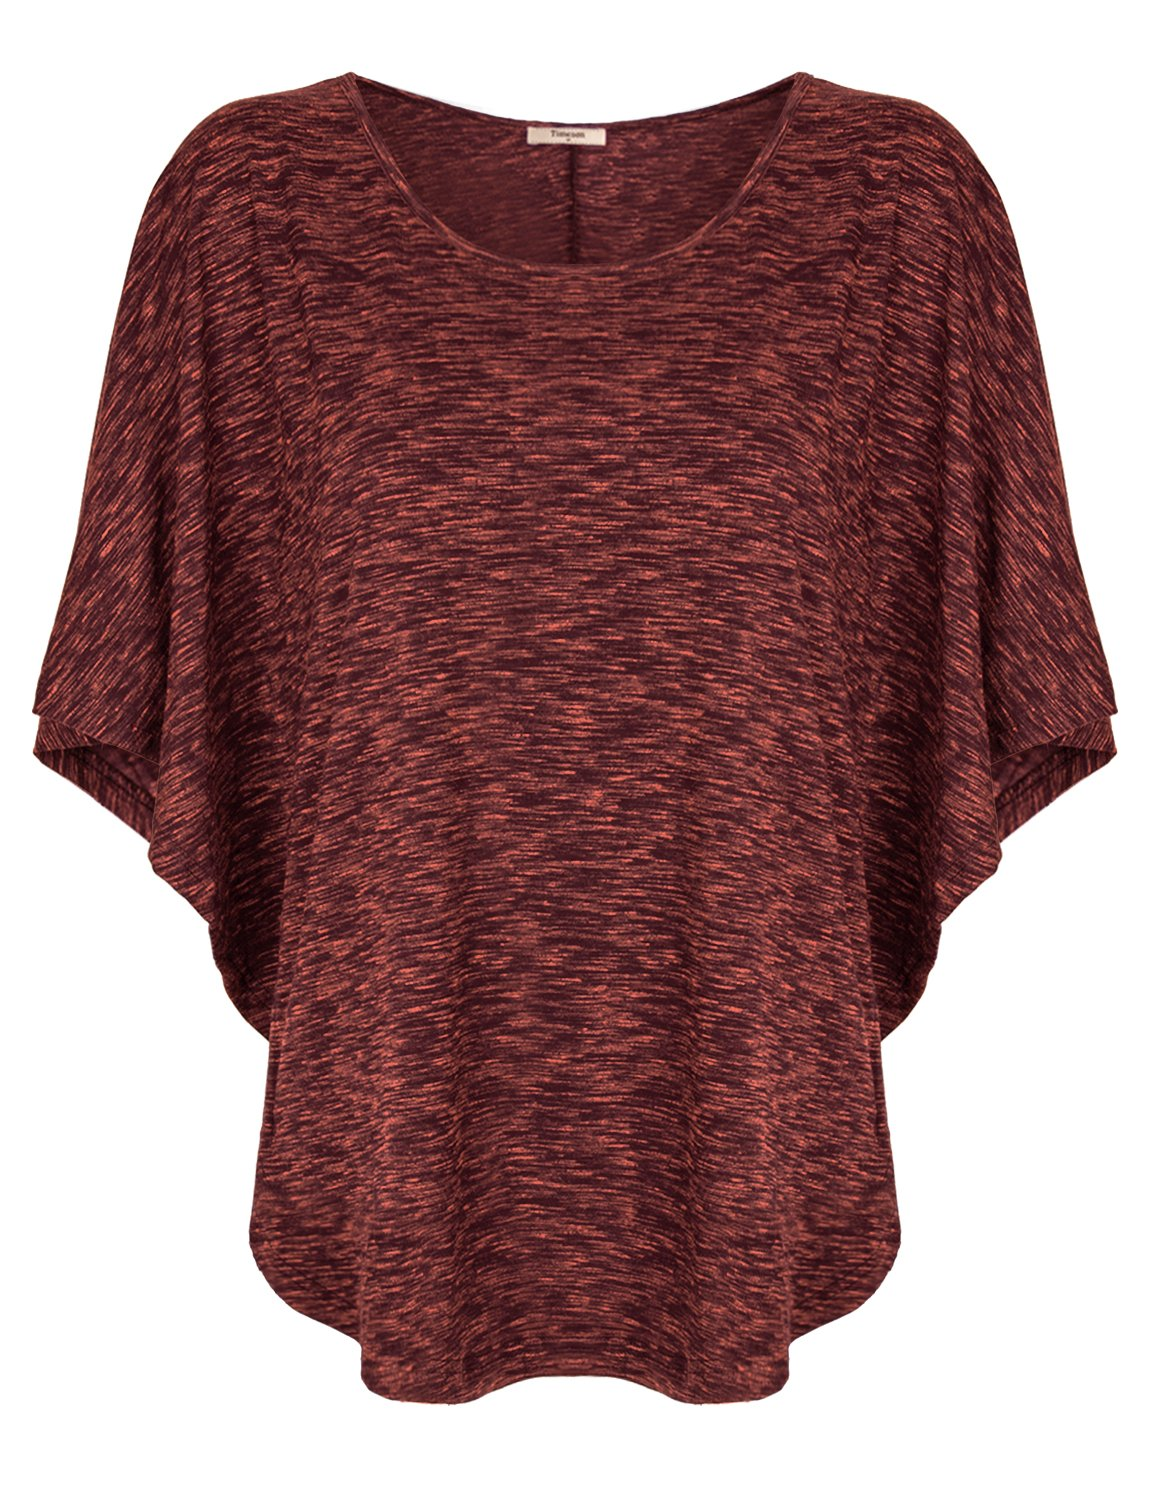 Timeson Batwing Shirt Women Short Sleeve Scoop Neck T-Shirt Blouse Top Small Wine